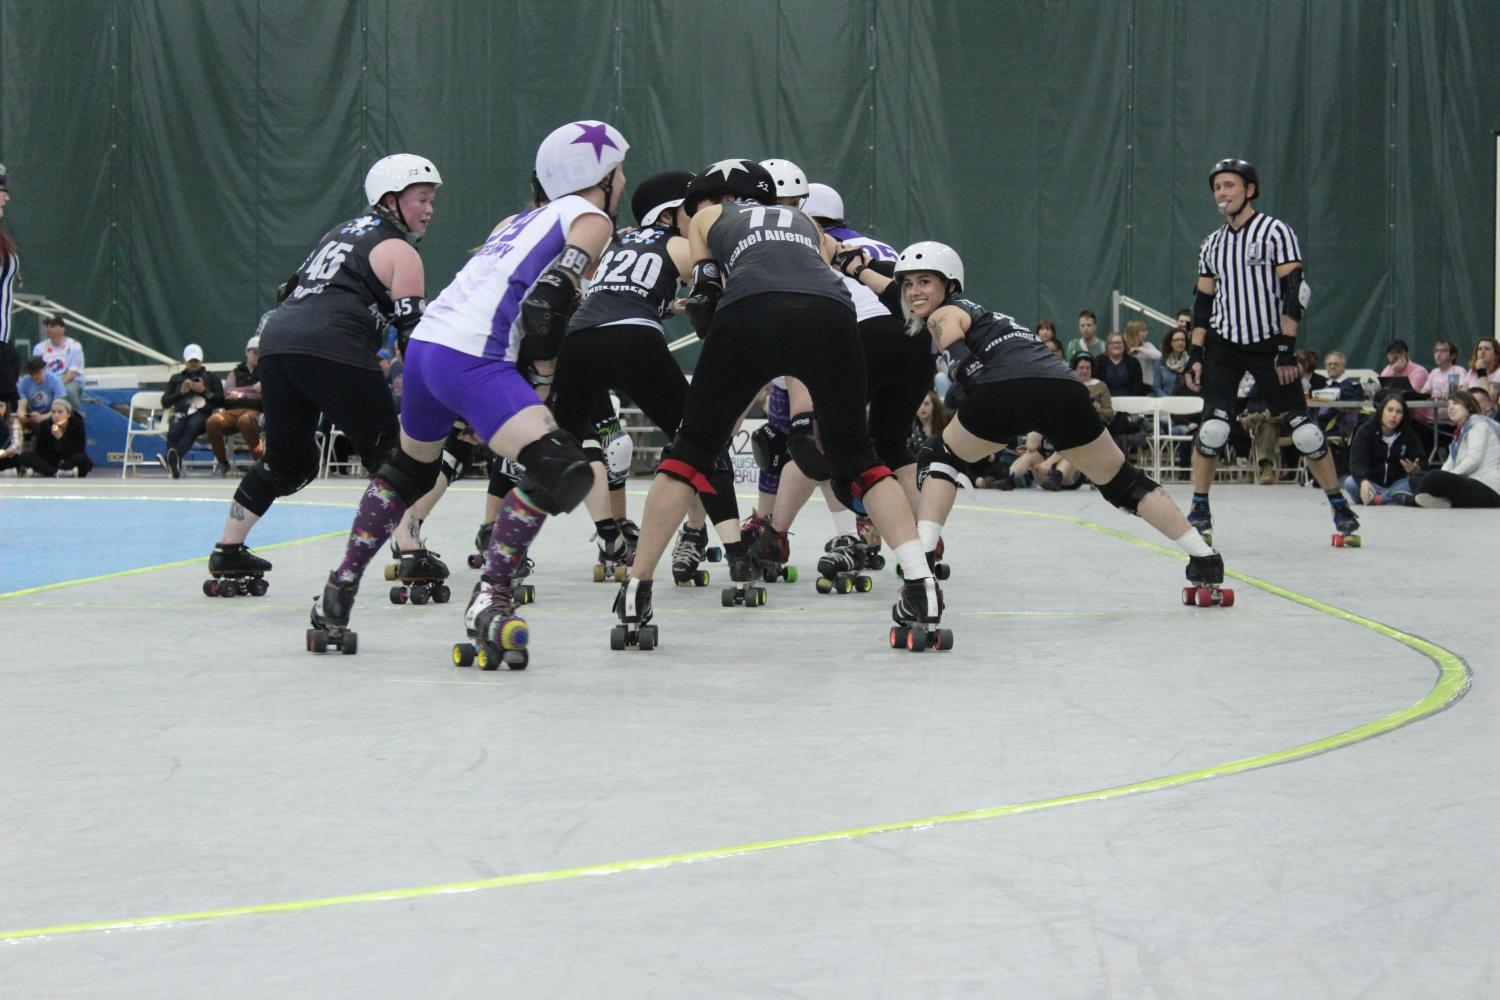 Windy City Rollers league on a winning streak